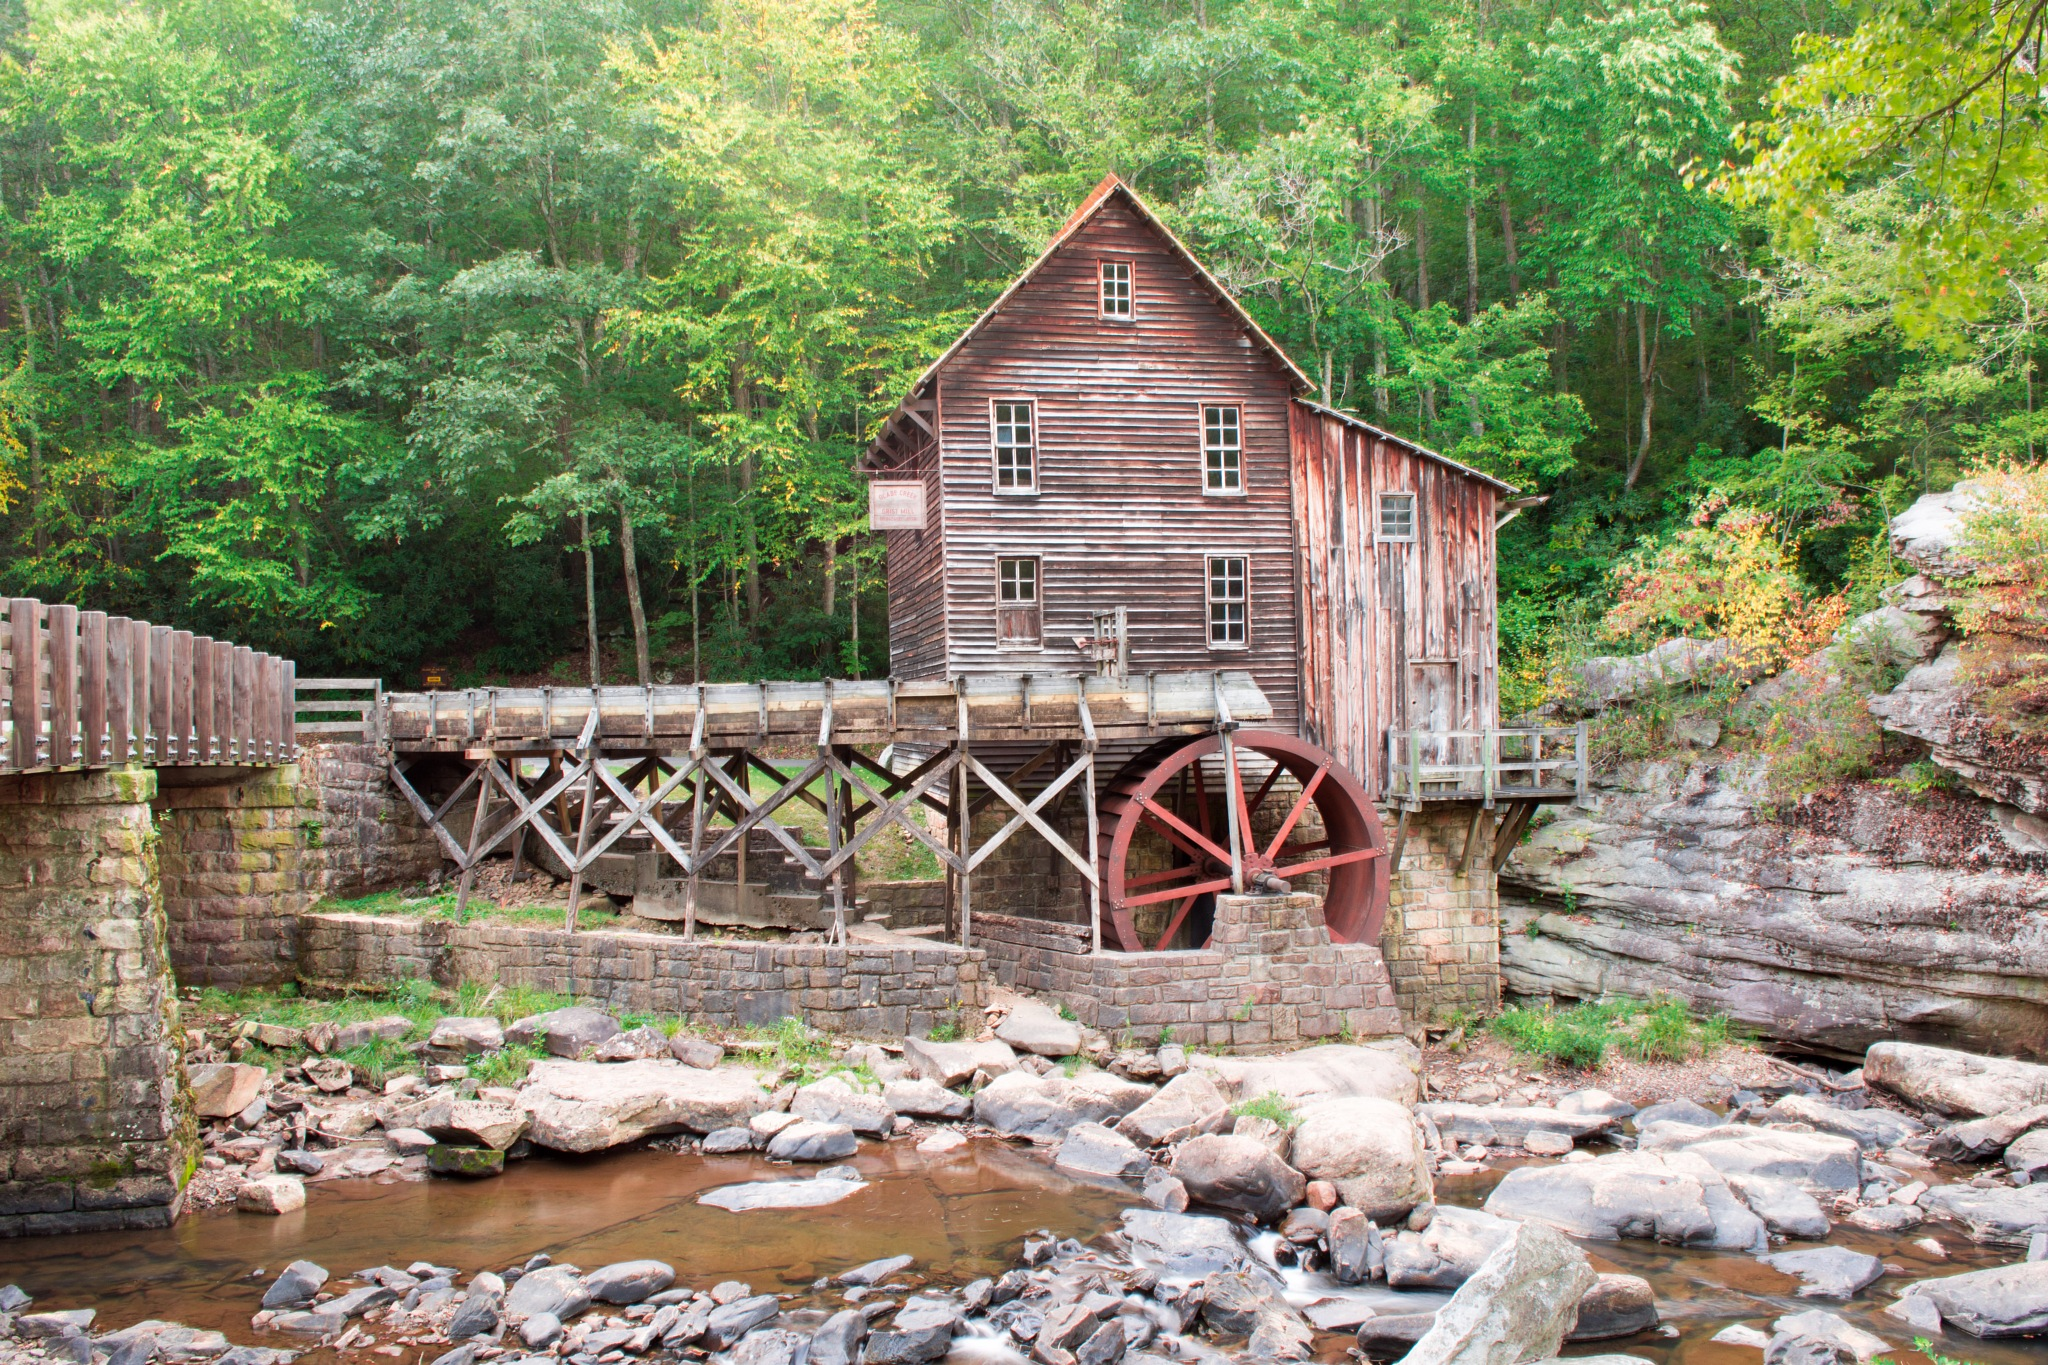 Gade Creek Grist Mill by mvmoorephotography